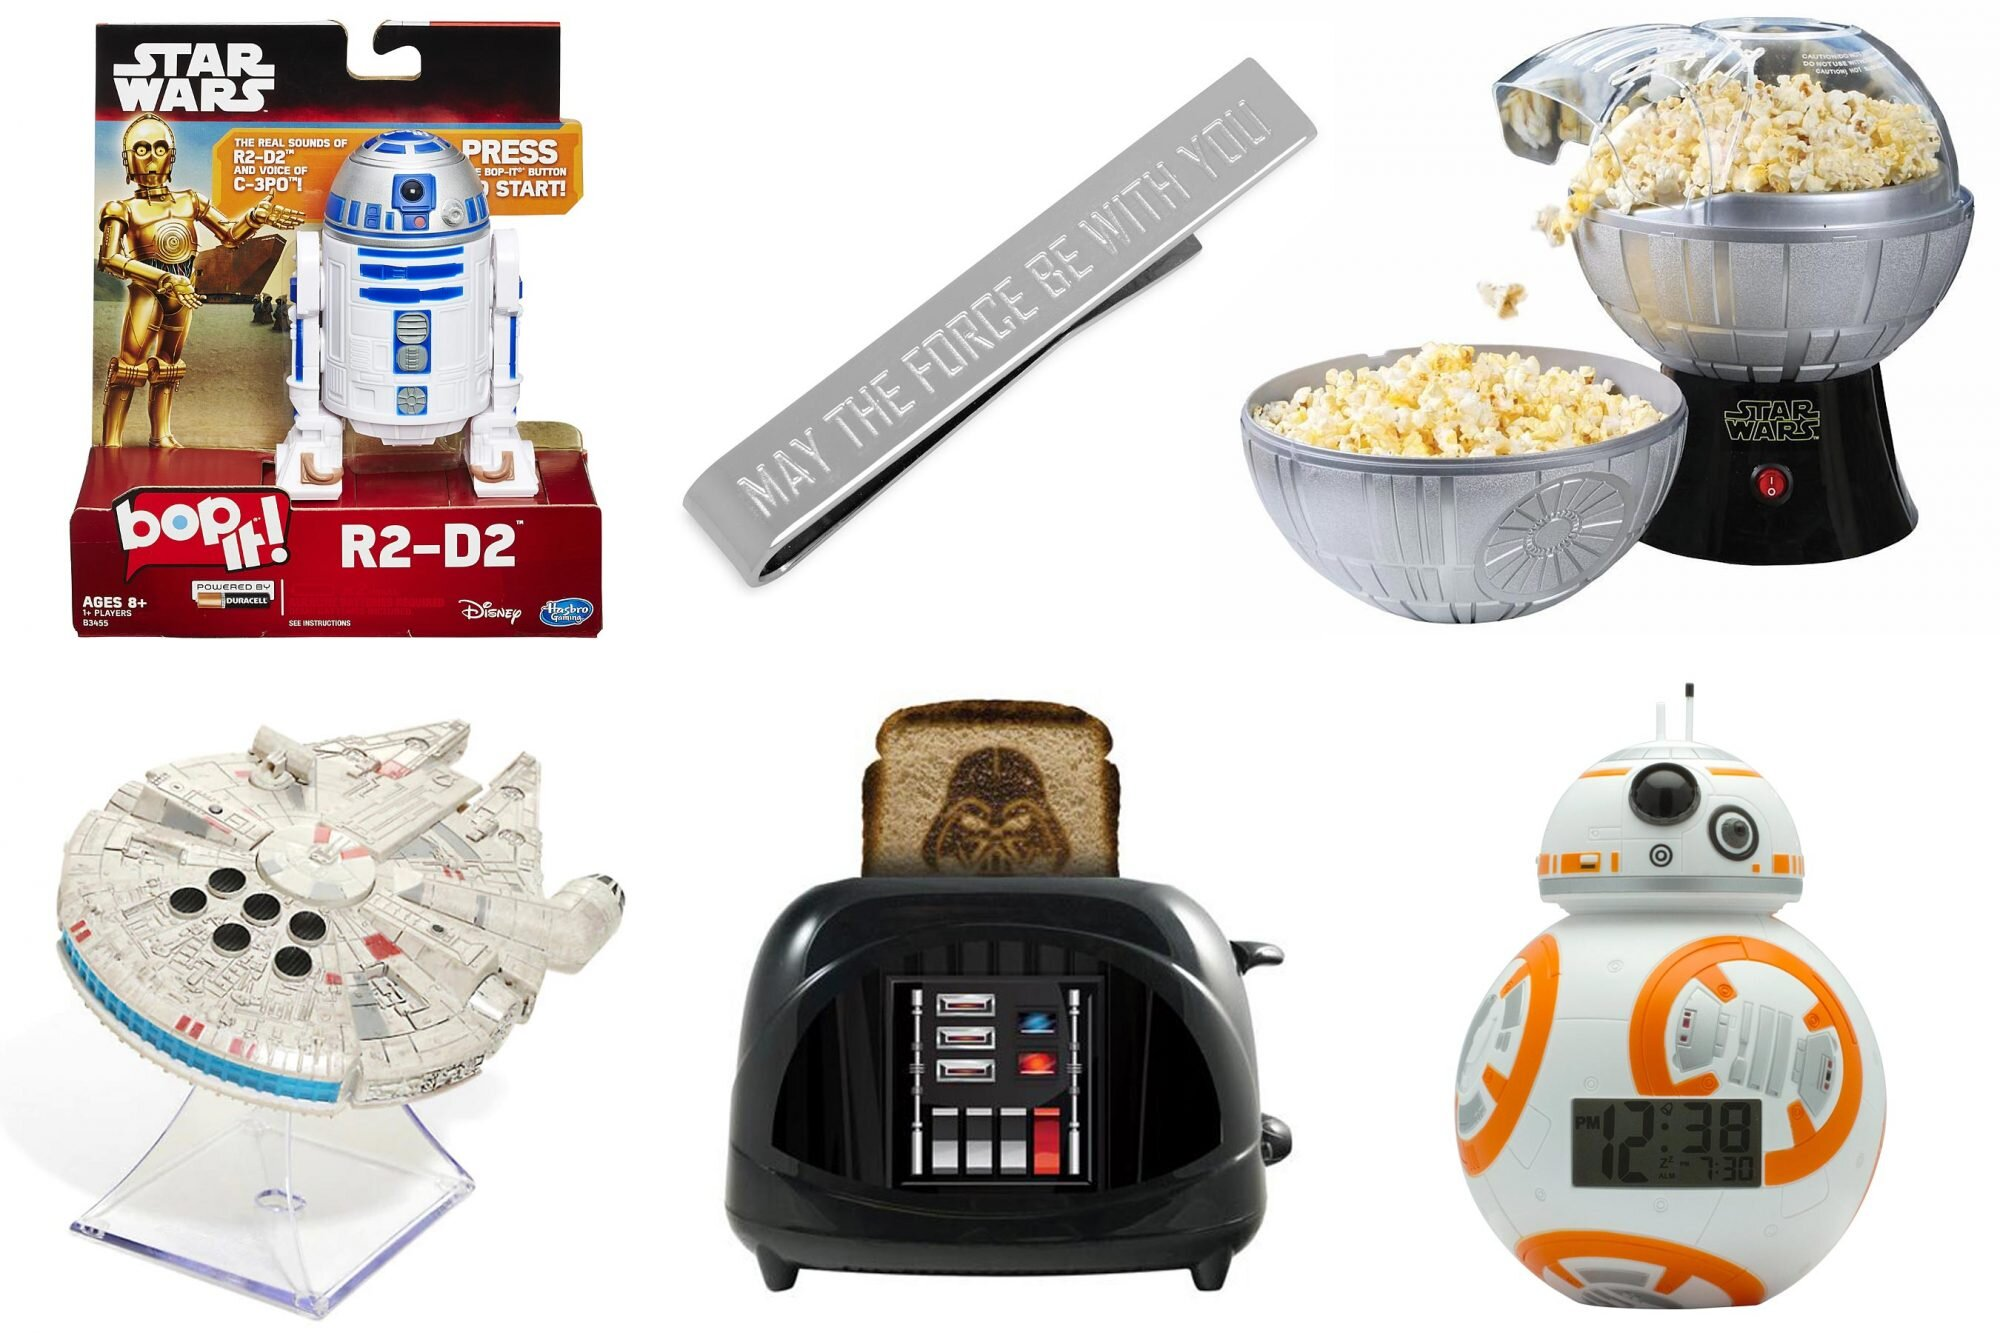 Star Wars Gifts You Can Buy Online Ewcom